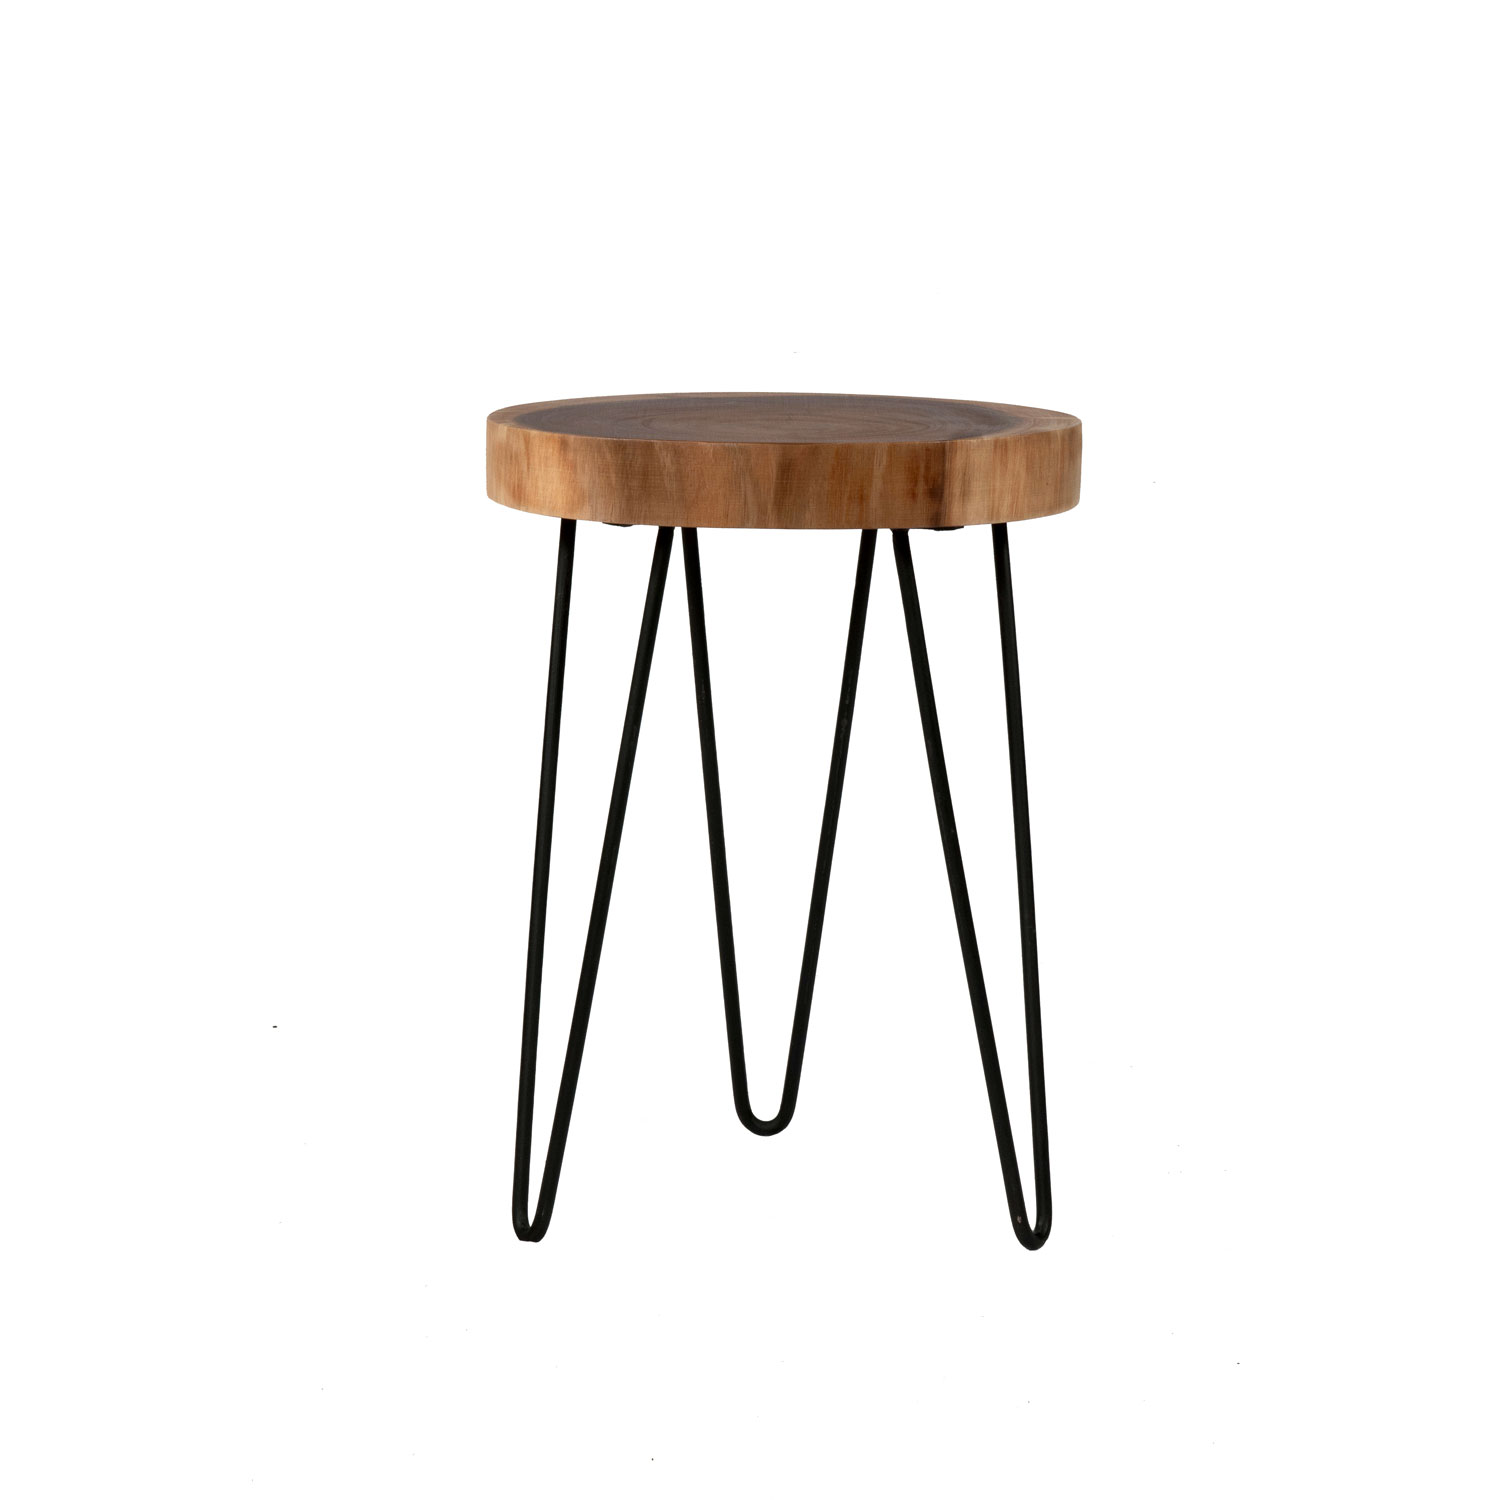 east main laredo brown teakwood round accent table oak hover zoom parasol stand half moon outdoor umbrella weights distressed mirror coffee antique drop leaf kitchen nic and bench